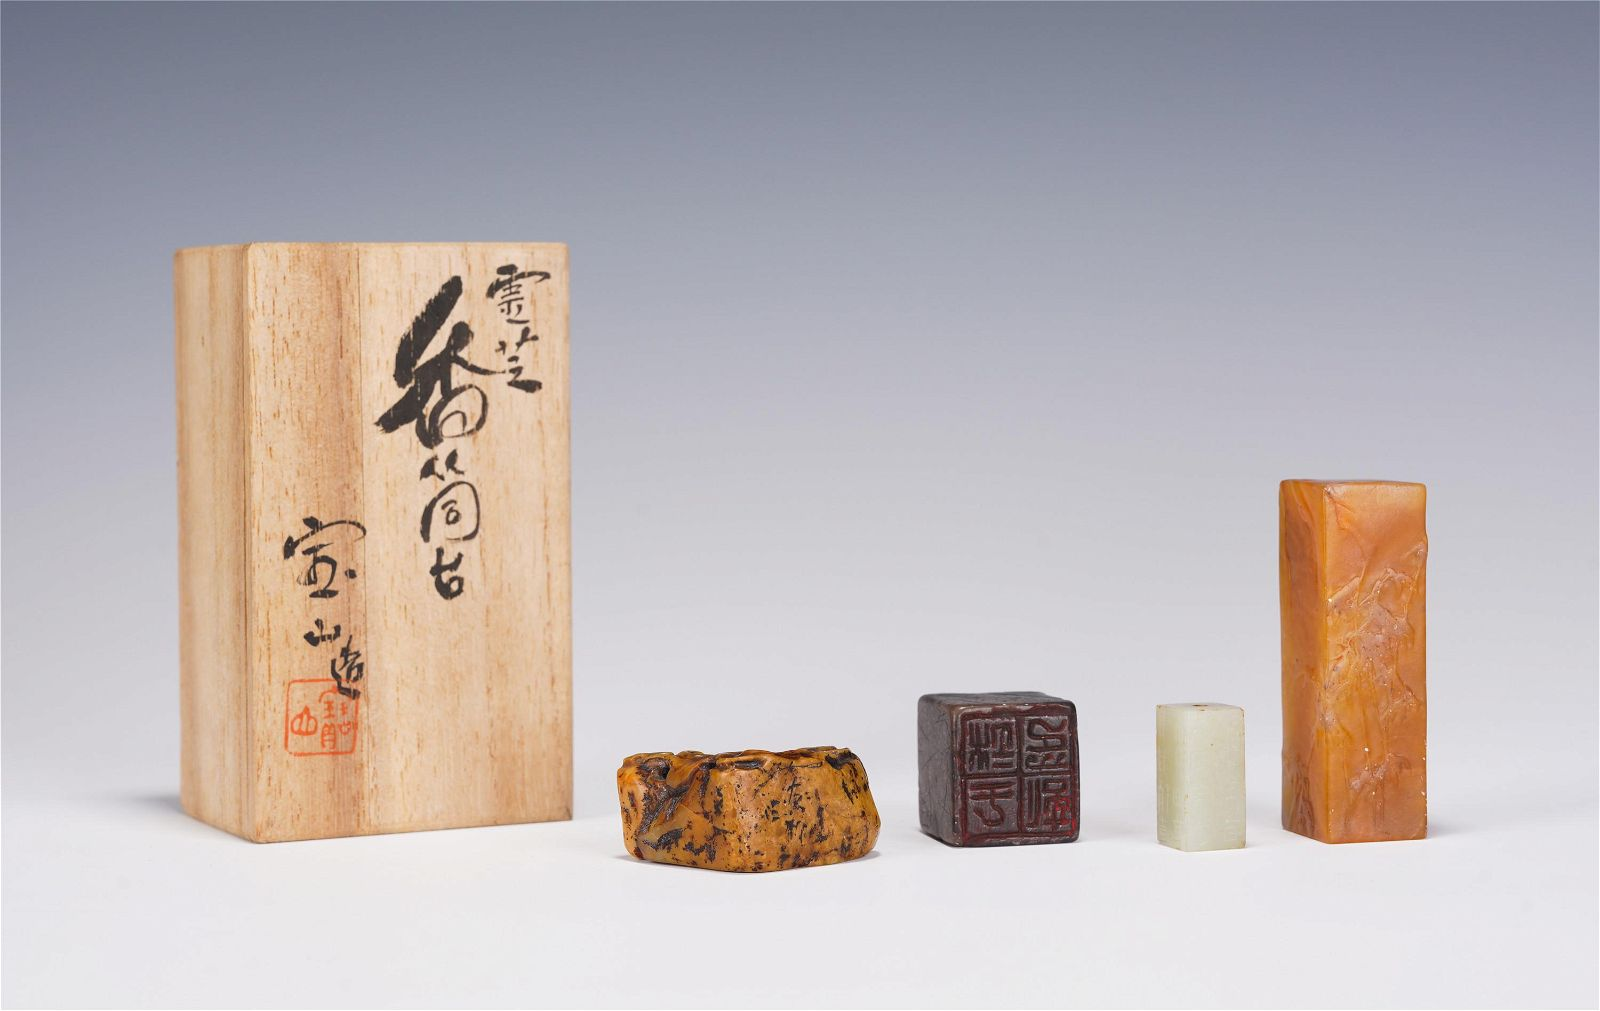 A GROUP OF TIANHUANG AND JADE SEALS WITH WOODEN BOX